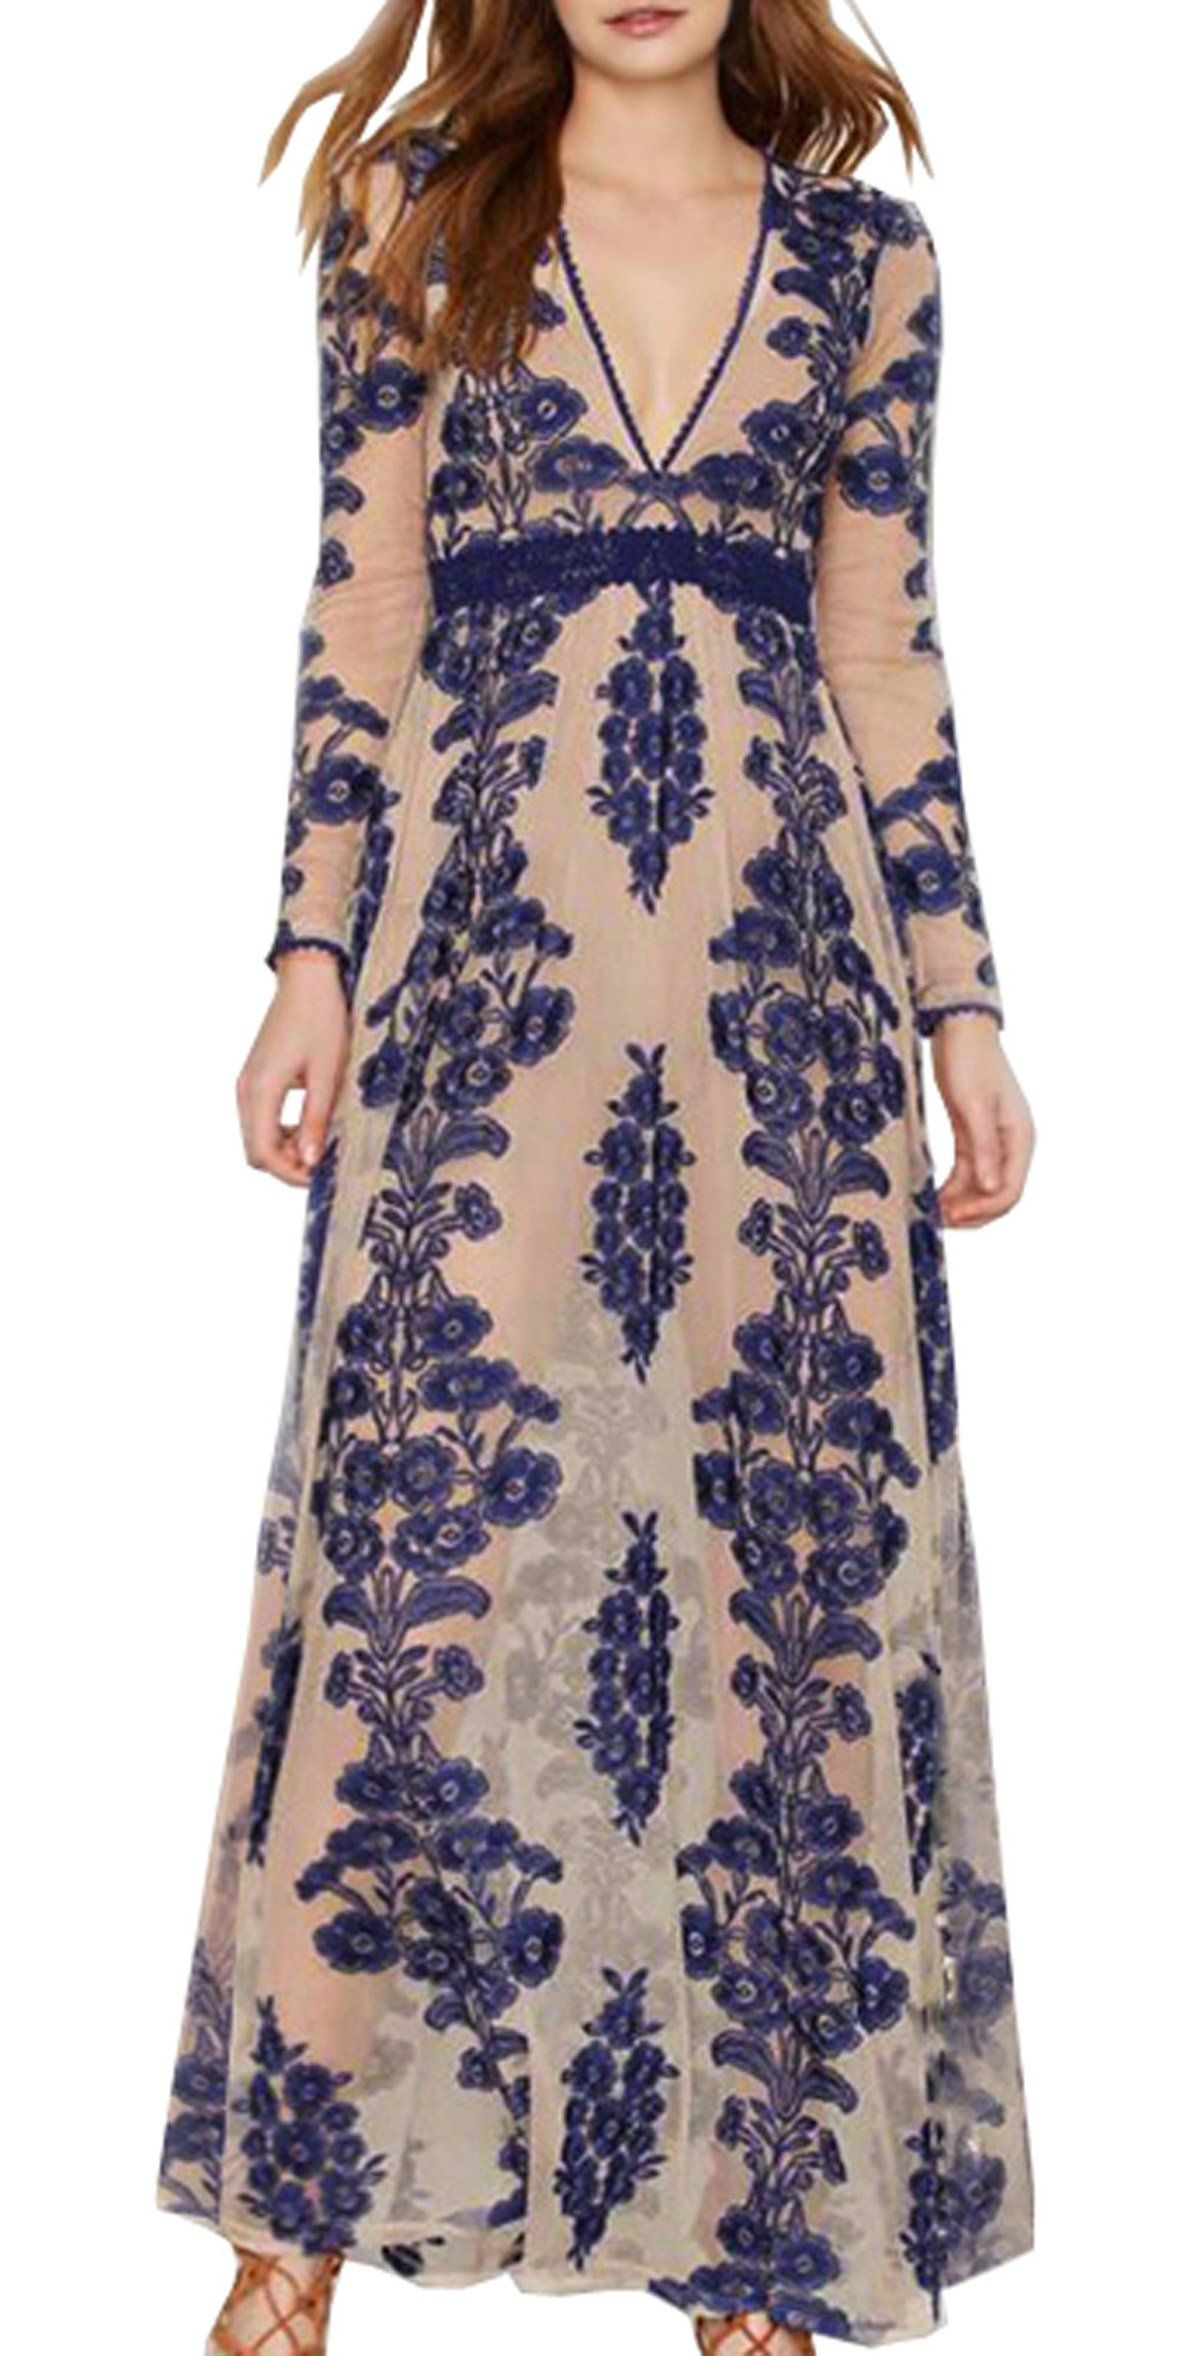 7c02c8fd12c R.Vivimos Women Long Sleeve V Neck Floral Embroidered Elegant ALine Maxi  Dress Small Blue     You can find out more details at the link of the image.